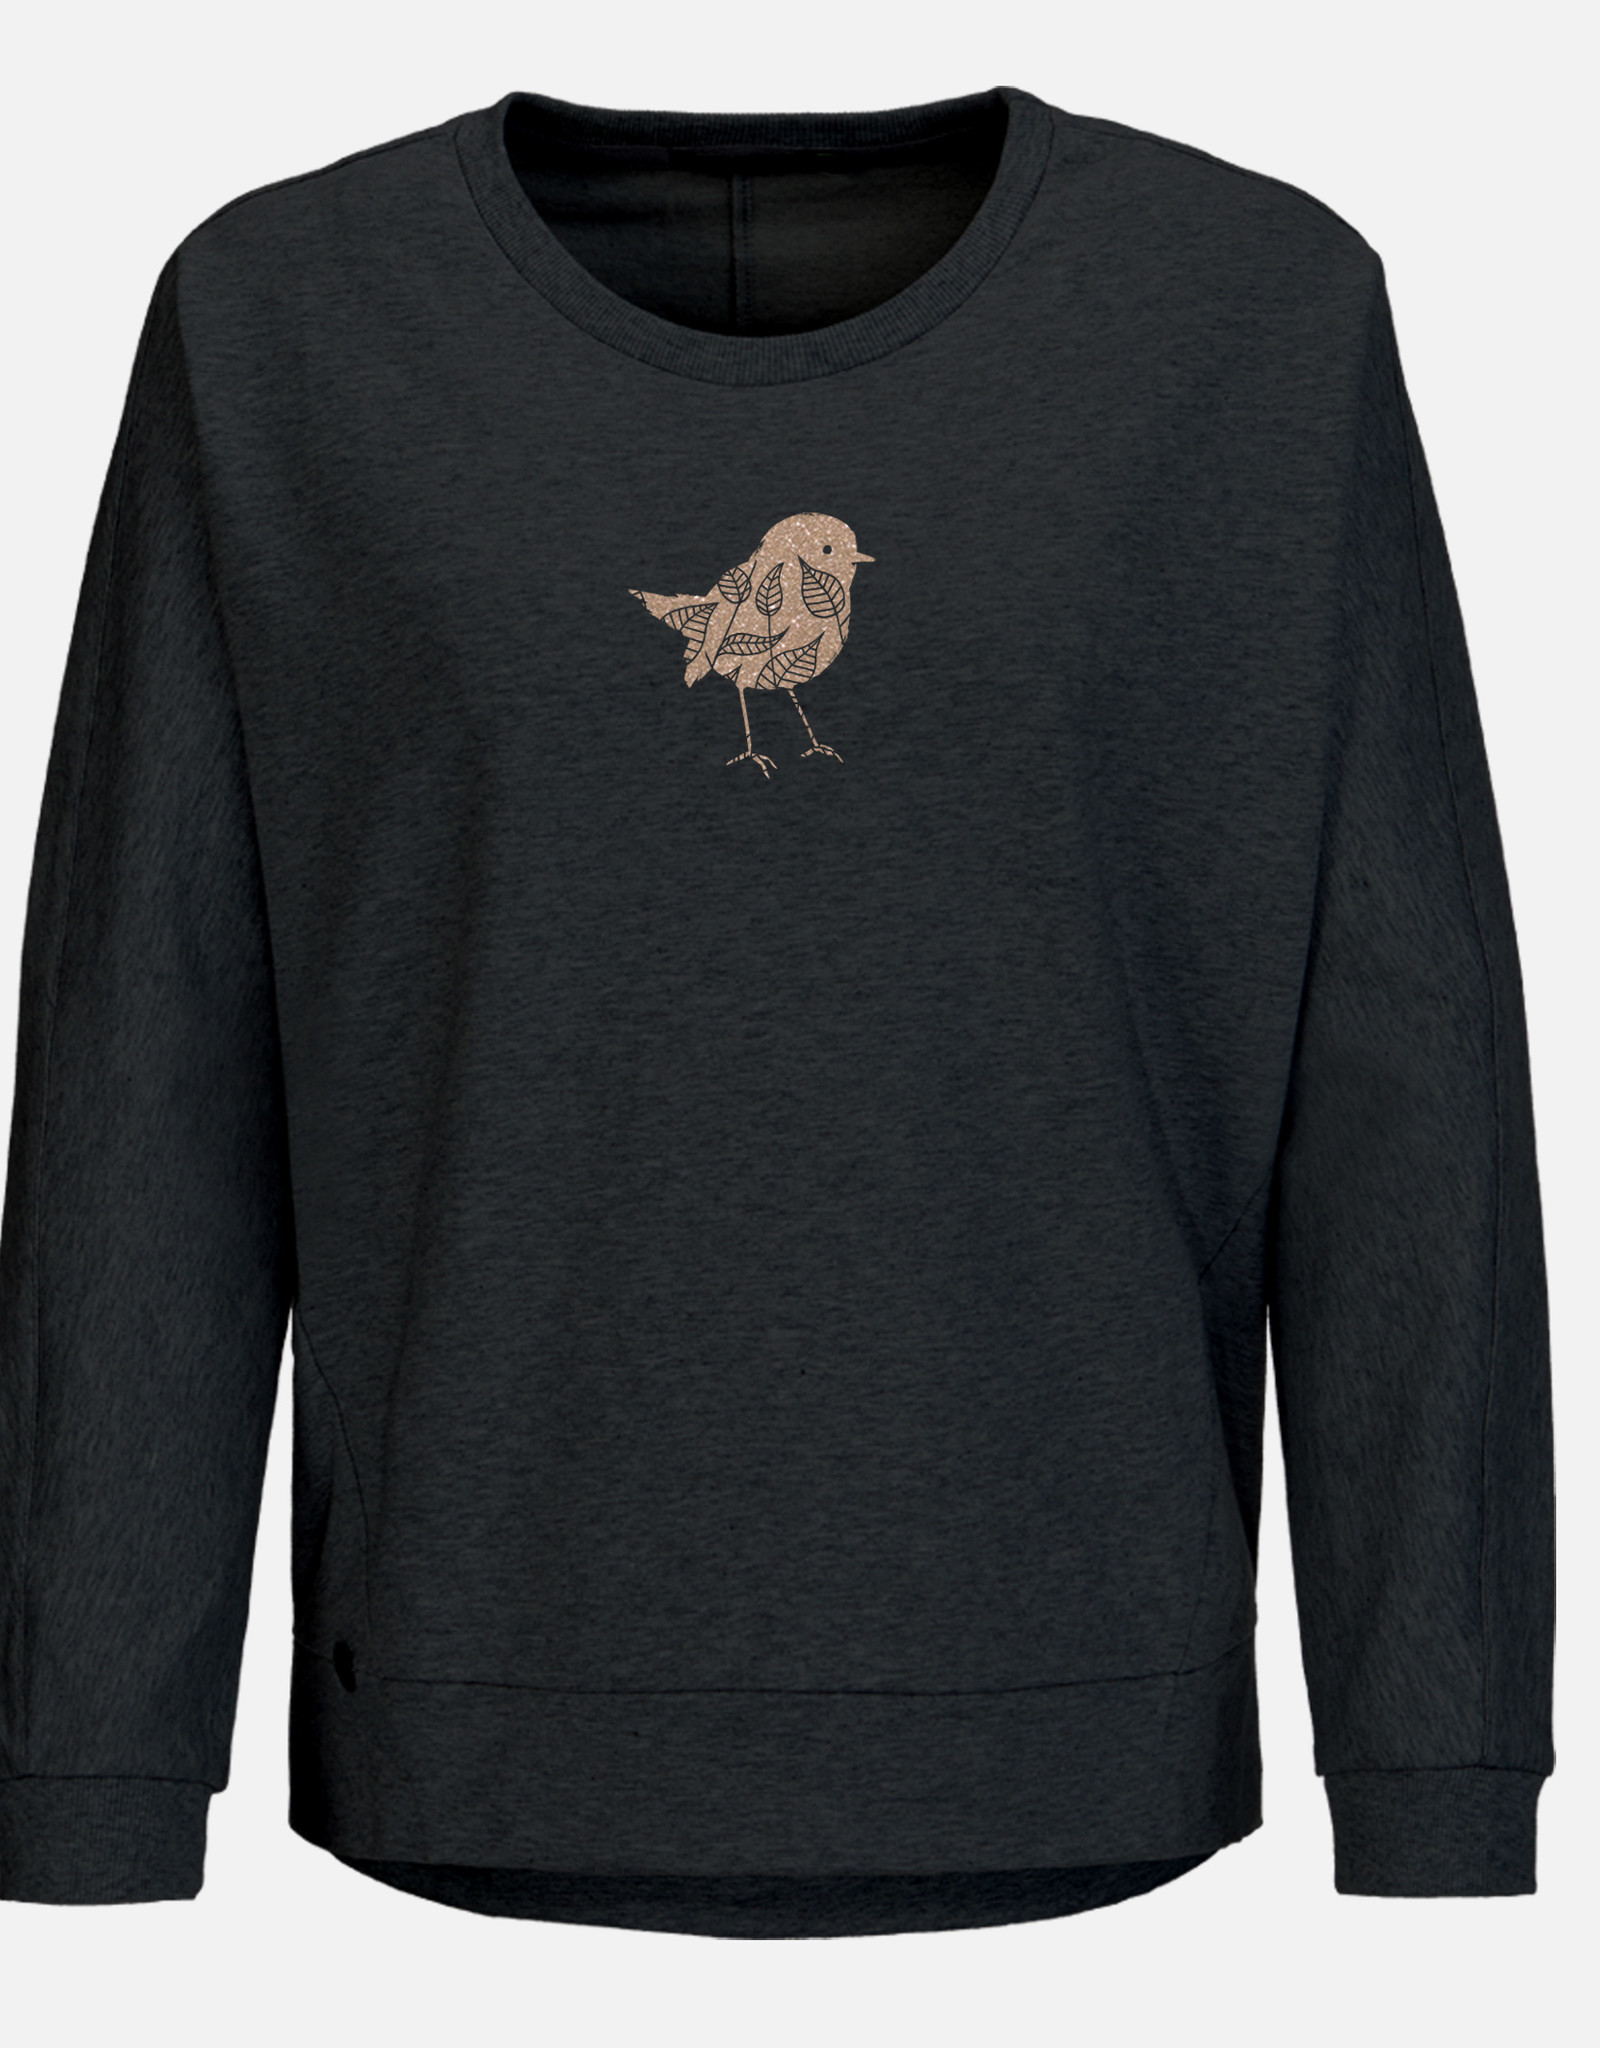 Greenbomb SWEATSHIRT GOLDPRINT BIRD BLACK